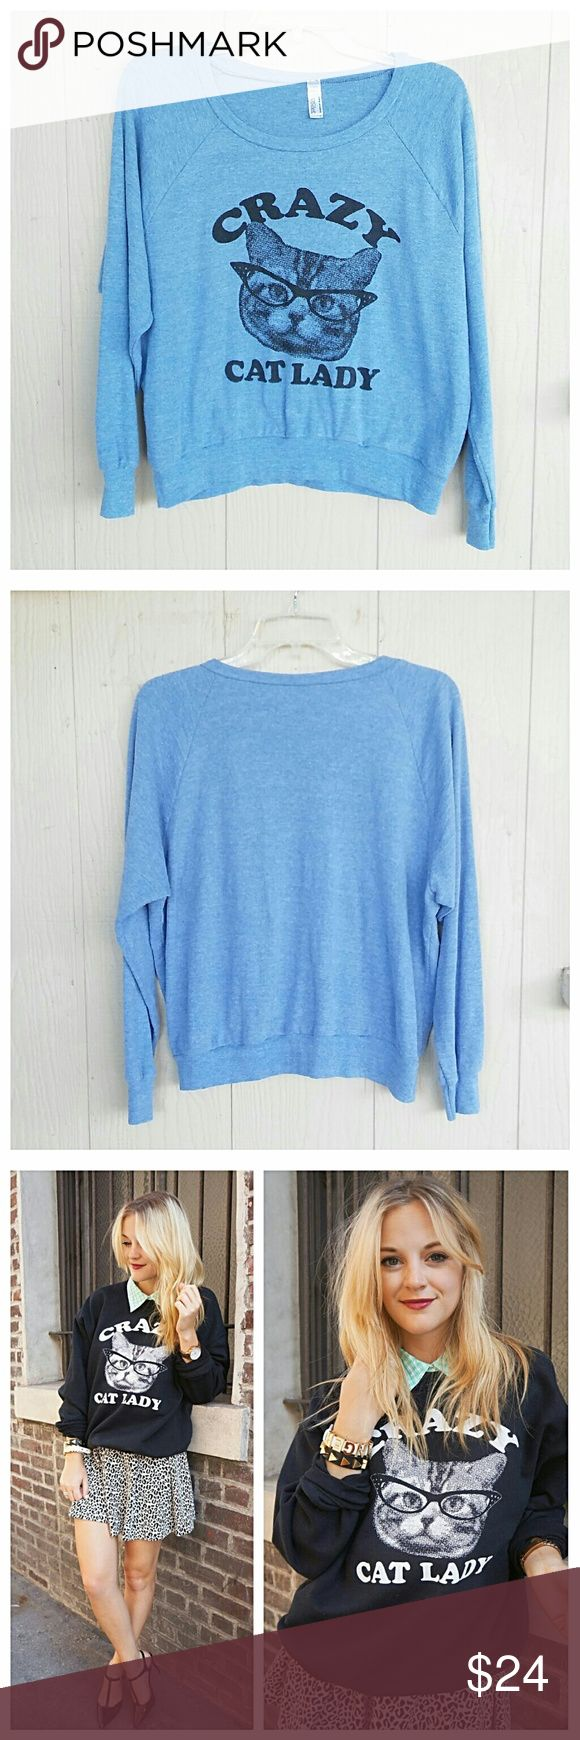 """Crazy Cat Lady Oversized Sweatshirt Lightweight sweatshirt great for layering or alone. Great condition and was freshly laundered. Armpit to Armpit -21"""" Length - 22"""" 💥 Reasonable offers accepted 💥 American Apparel Tops Sweatshirts & Hoodies"""